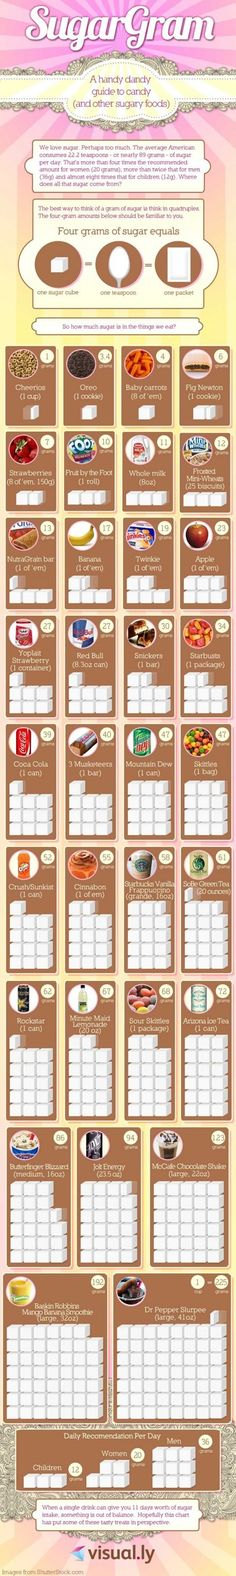 How Much Sugar Are you Eating?  I don't think that I actually wanted to know this...